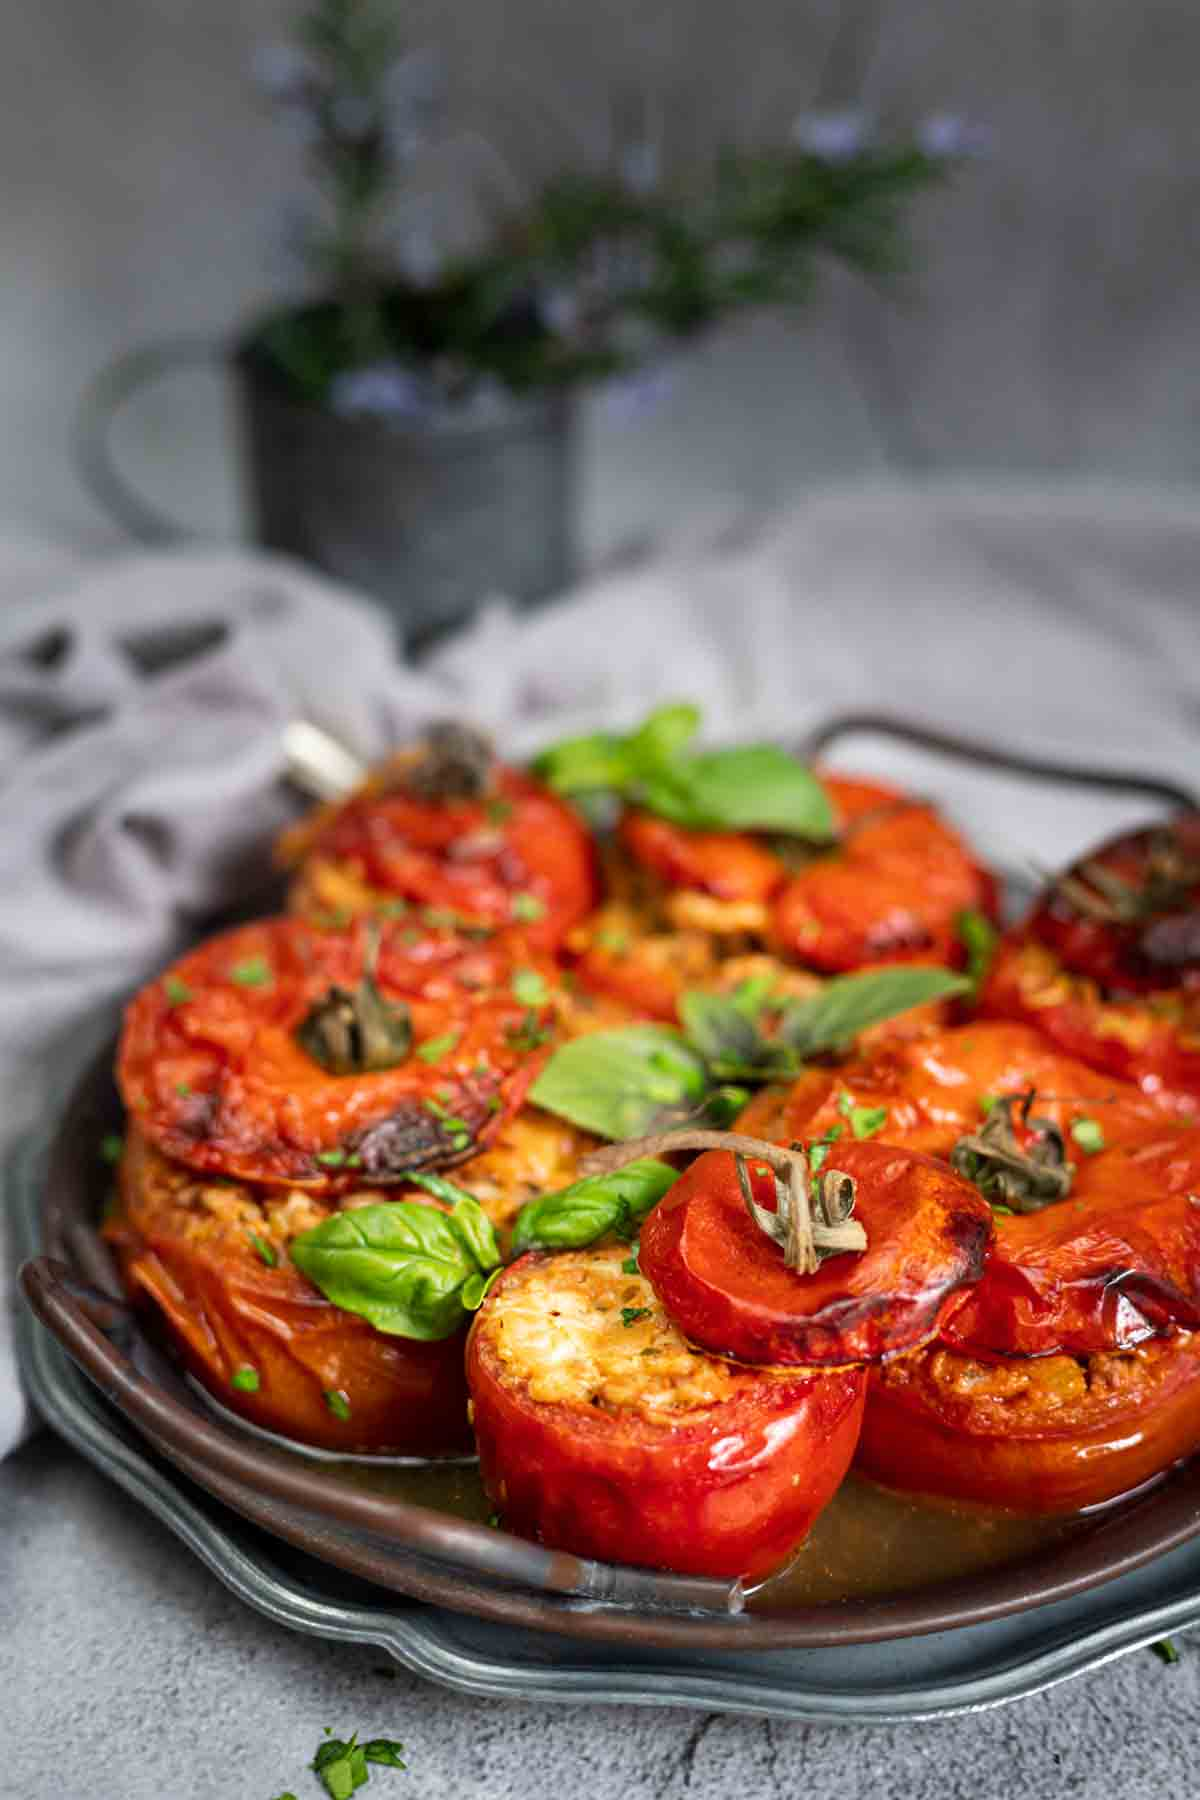 Ground Beef Stuffed Tomatoes Recipe in an antique tray